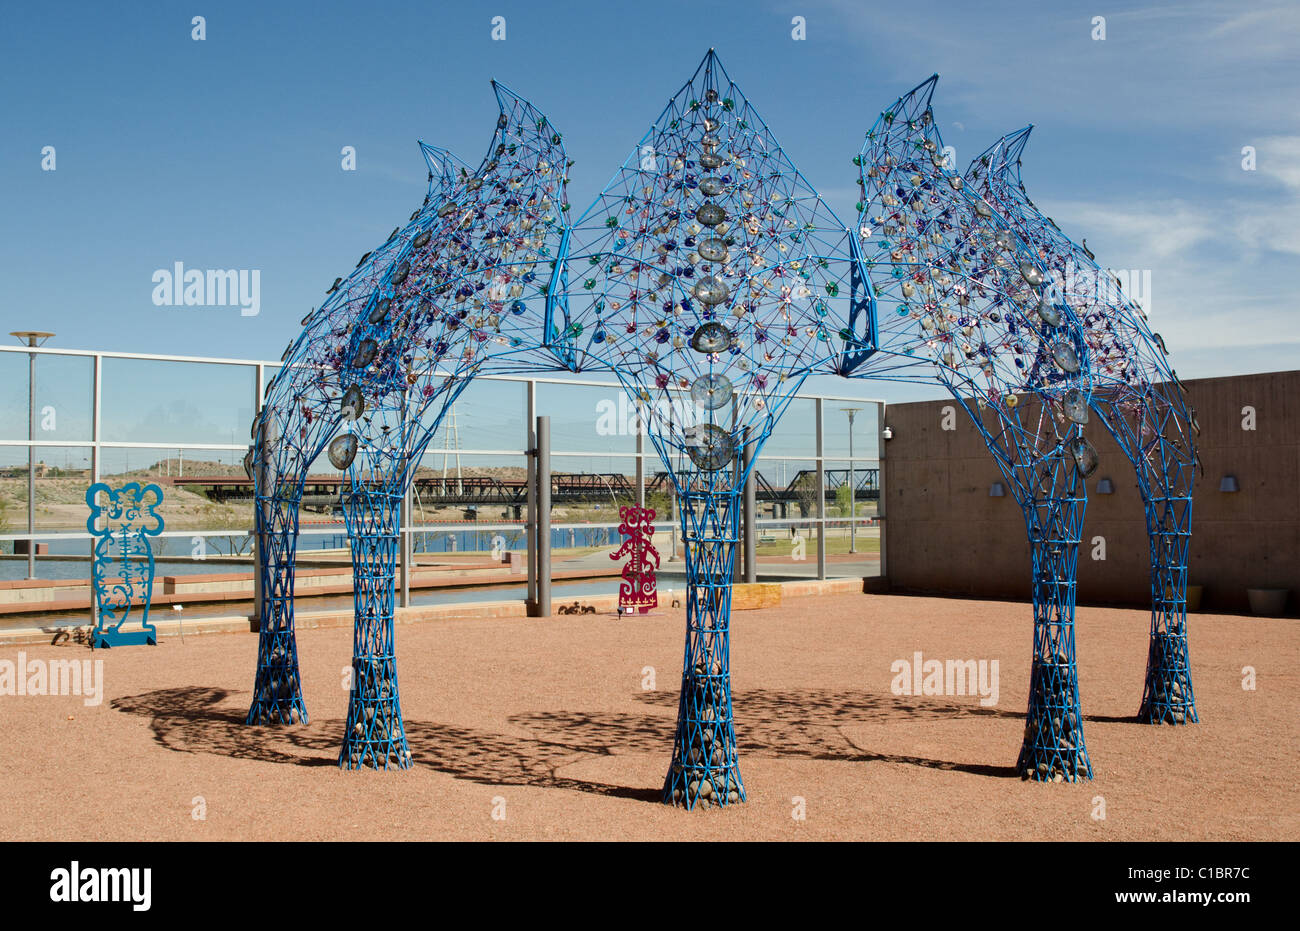 In the Sculpture Garden at the Tempe Center for the Arts in Tempe, near Phoenix, Arizona, USA - Stock Image